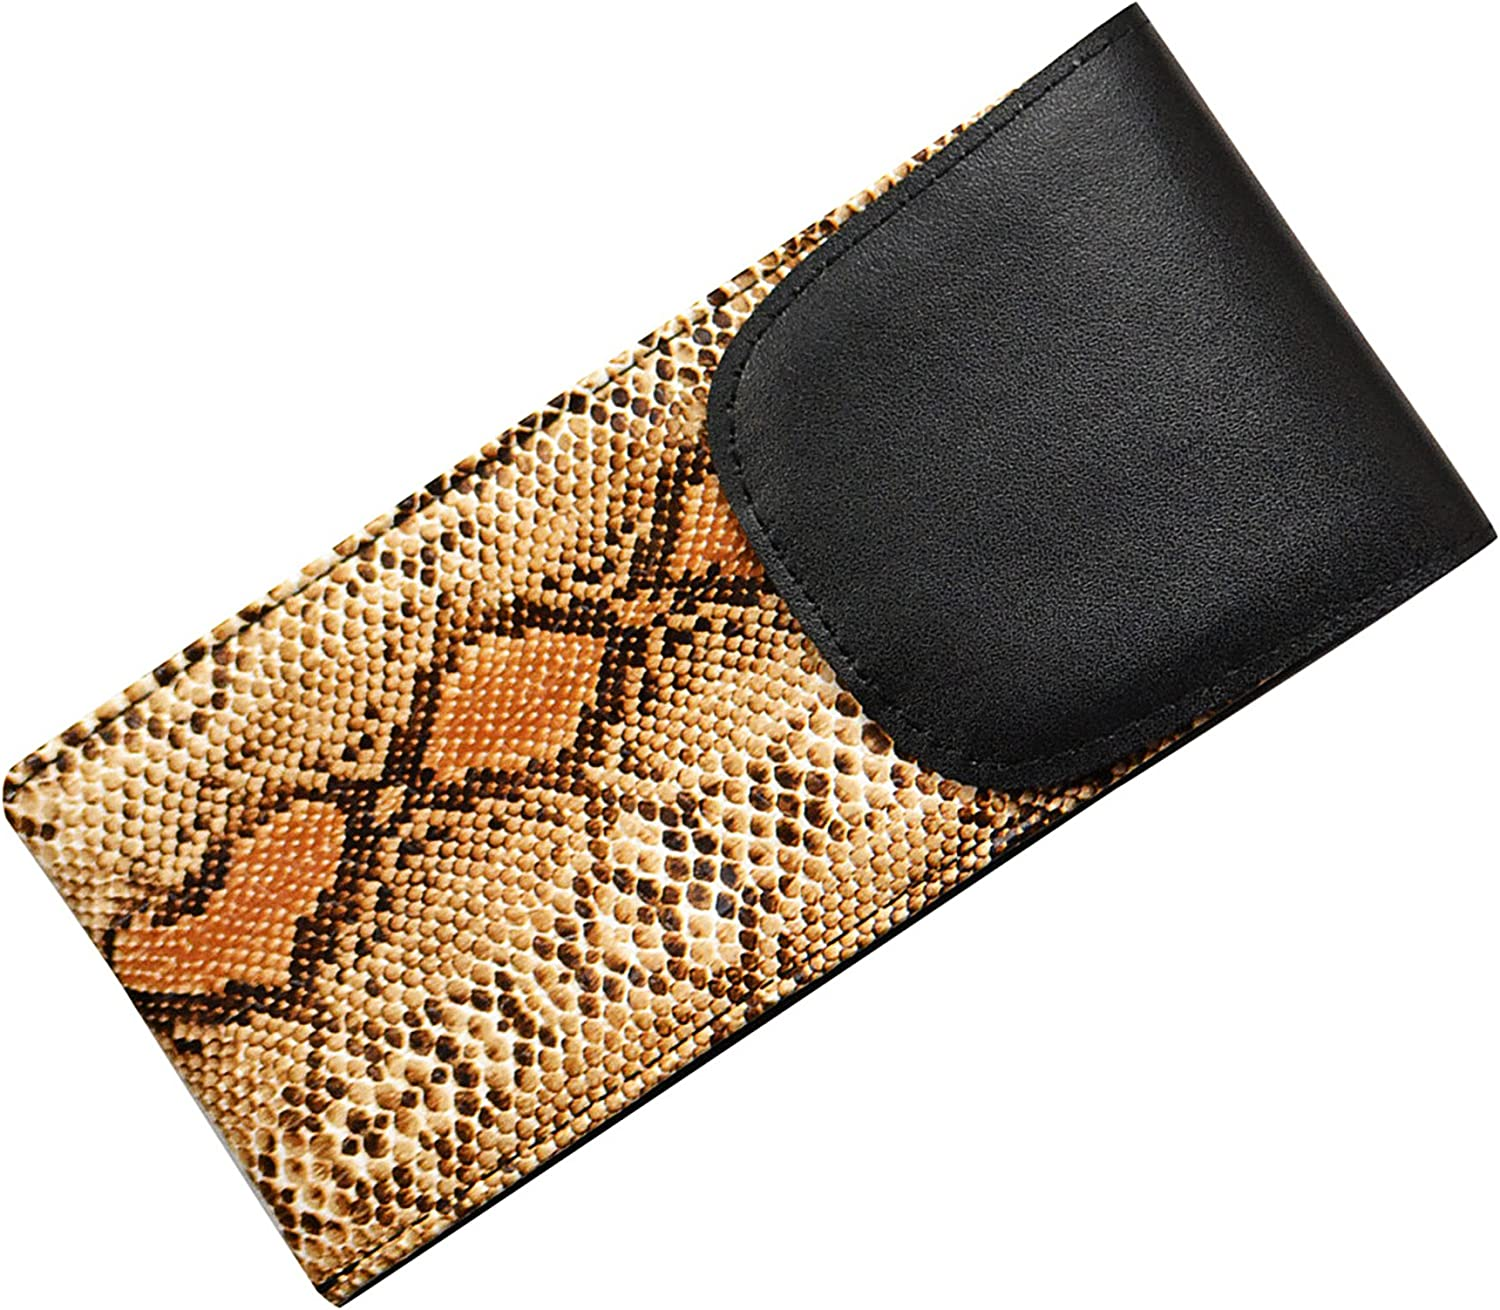 Faux Snake Skin 2 Pack Soft Eyeglass Cases Slip In Style With Velcro Closure